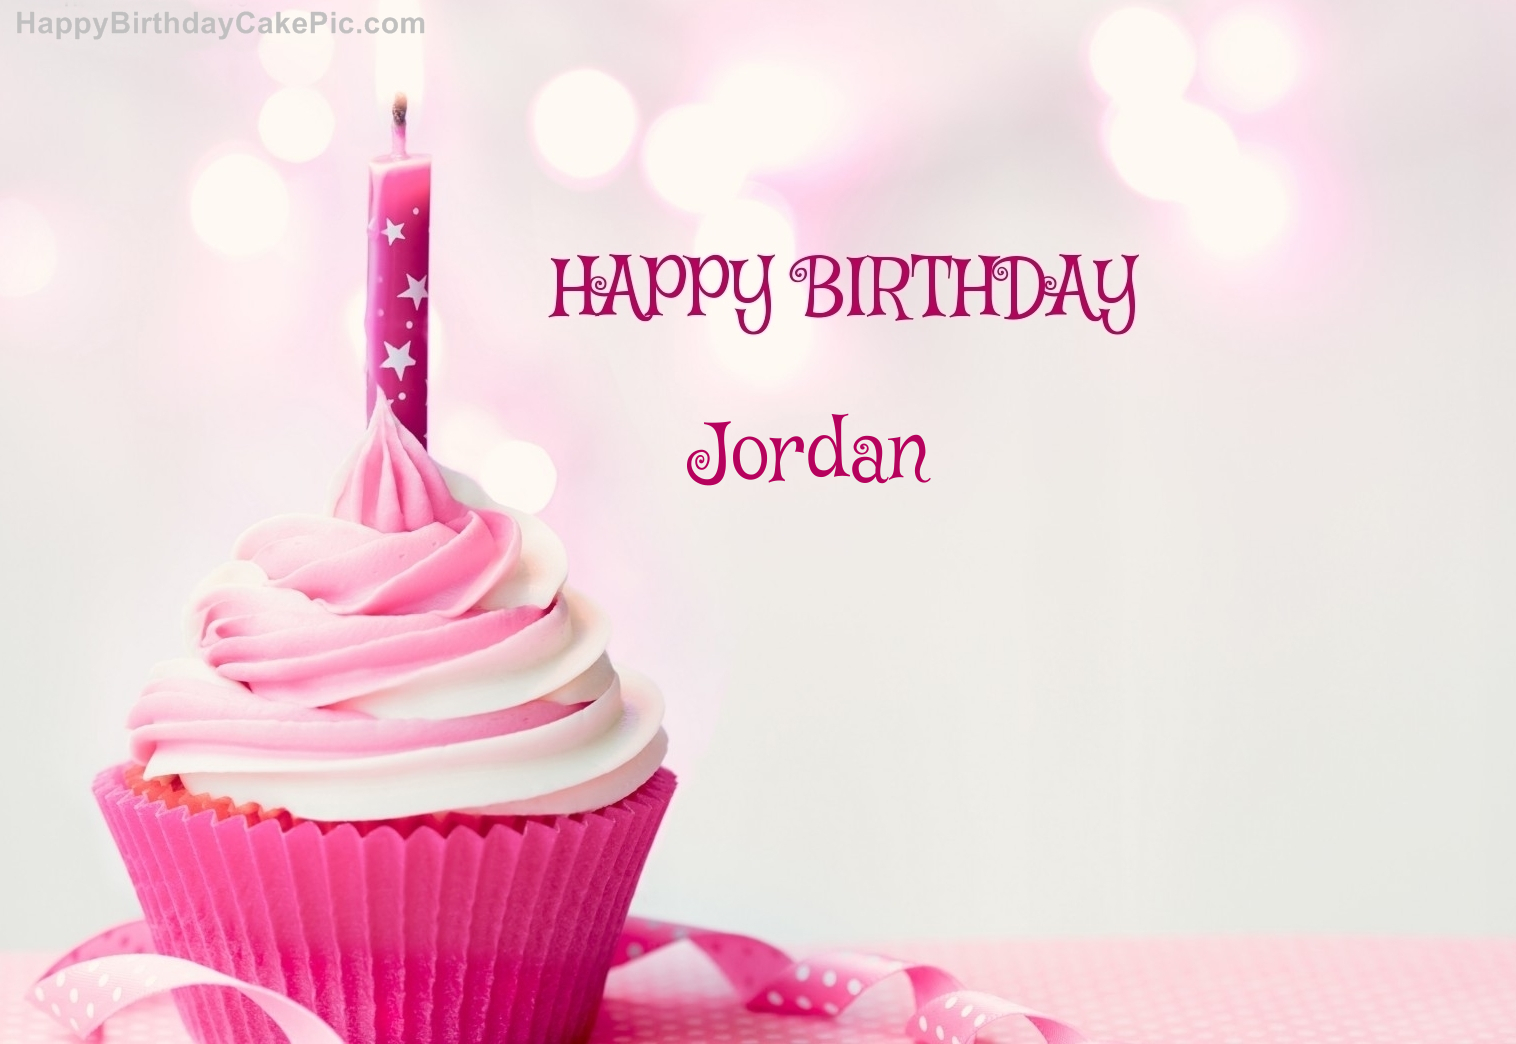 Happy Birthday Cupcake Candle Pink Cake For Jordan